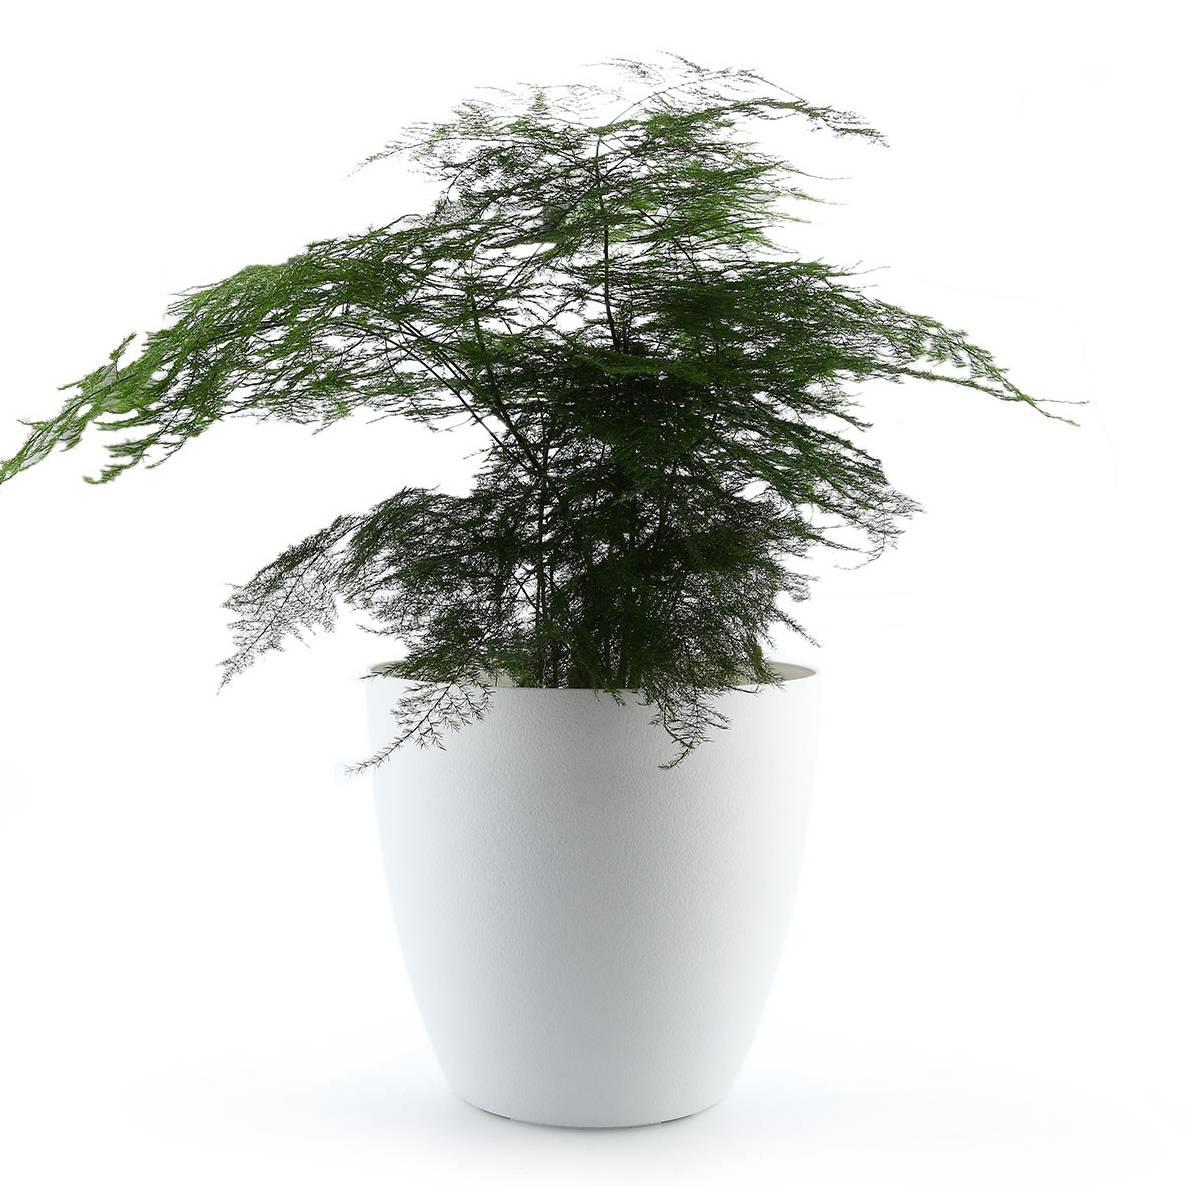 T4U 13.75 Plastic Self Watering Planter with Water Level Indicator White, Modern Decorative Planter Pot for All House PlantsT4U 13.75 Plastic Self Watering Planter with Water Level Indicator White, Modern Decorative Planter Pot for All House Plants